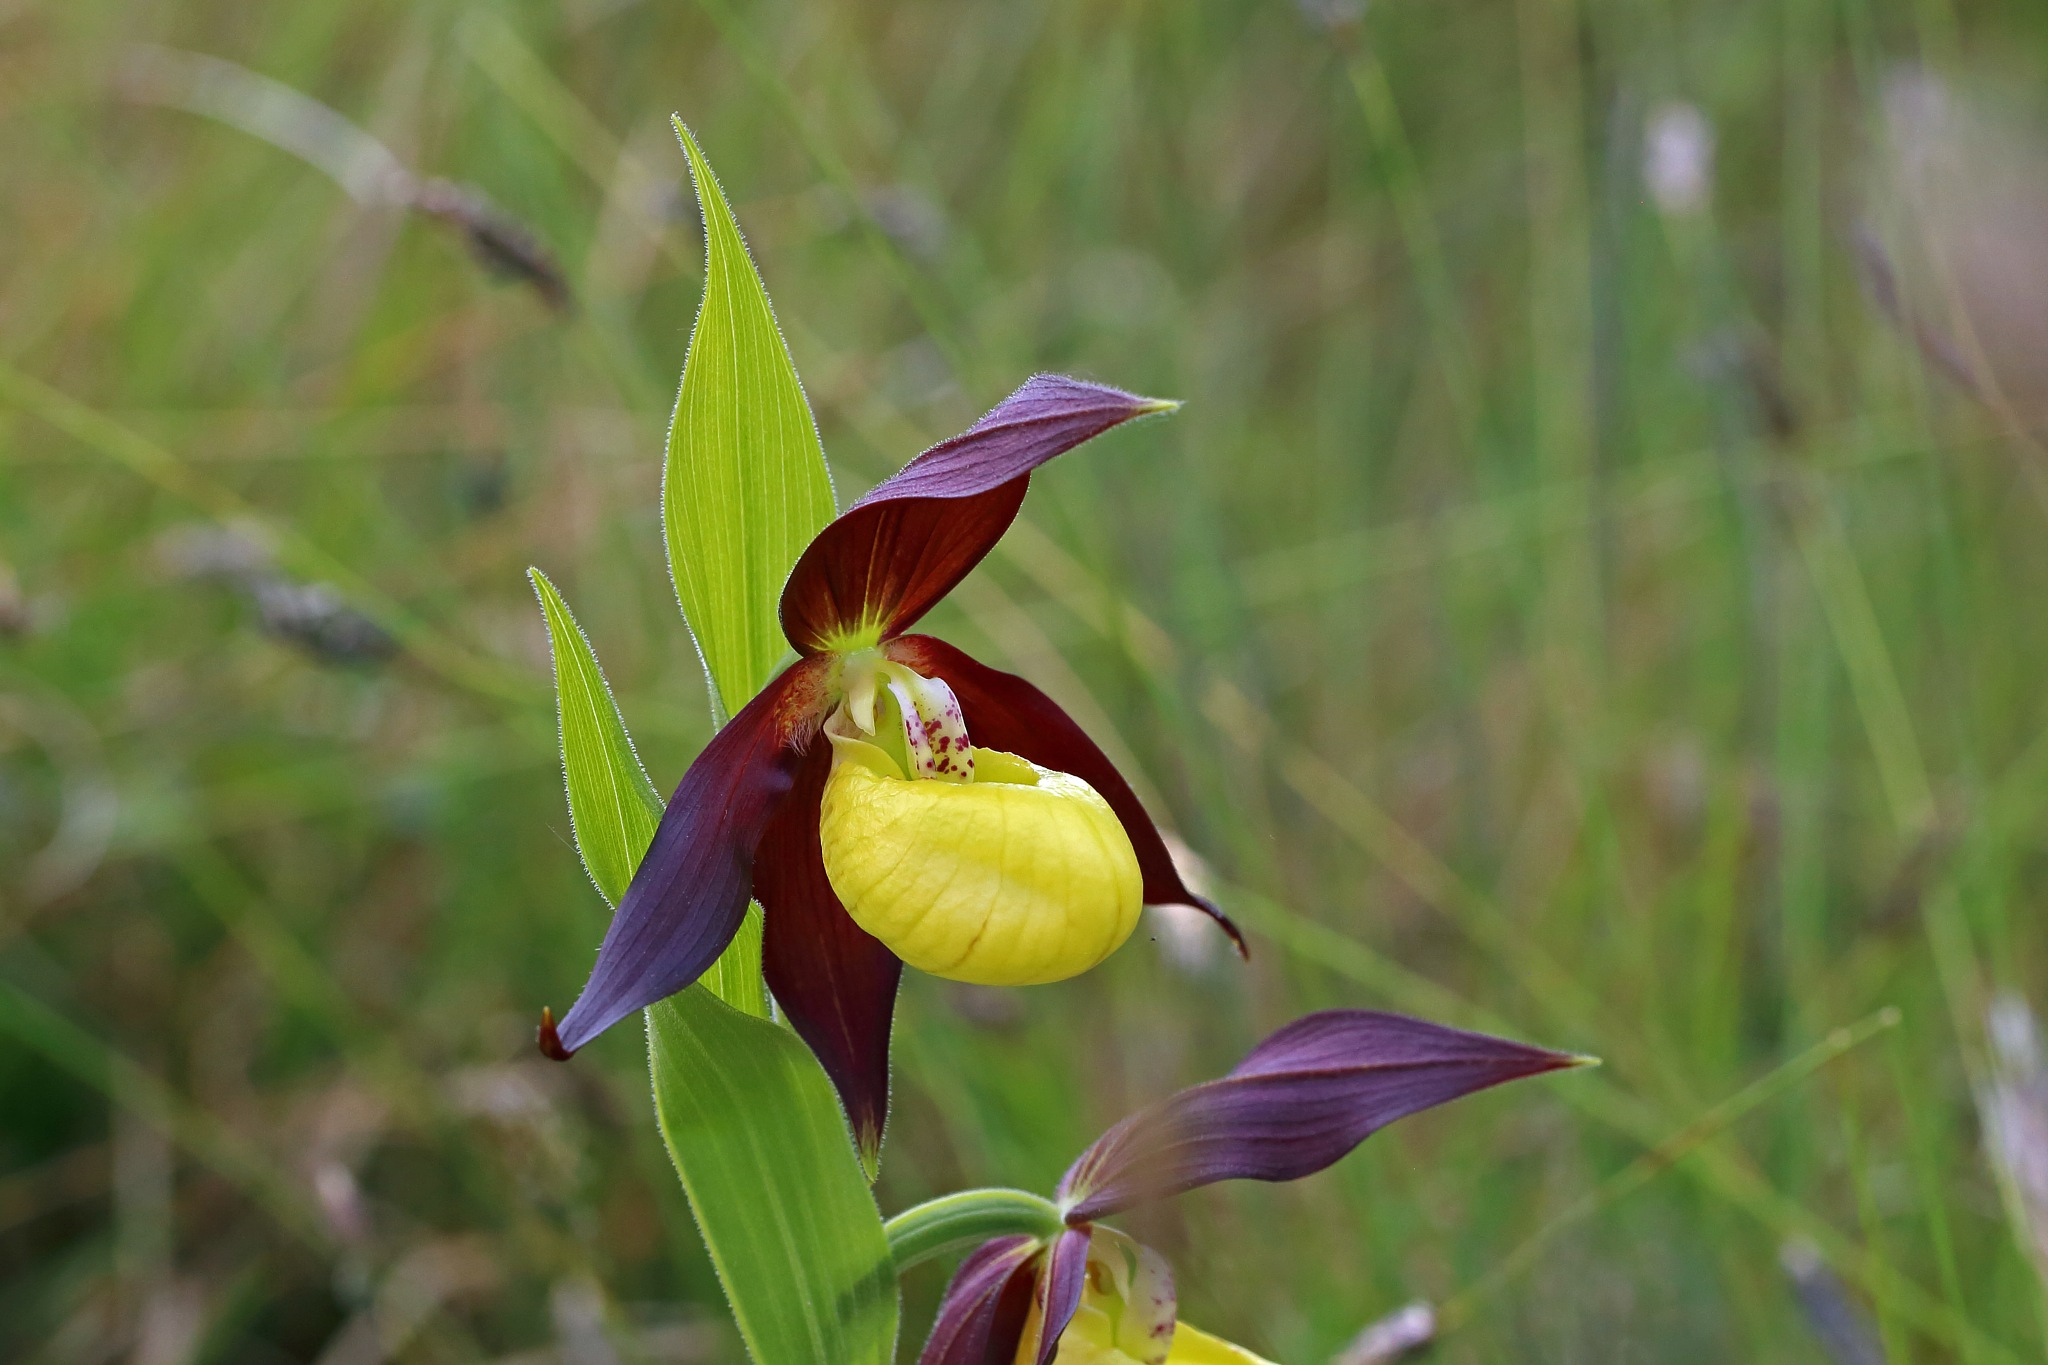 Lady's Slipper Orchid by Nigel Voaden